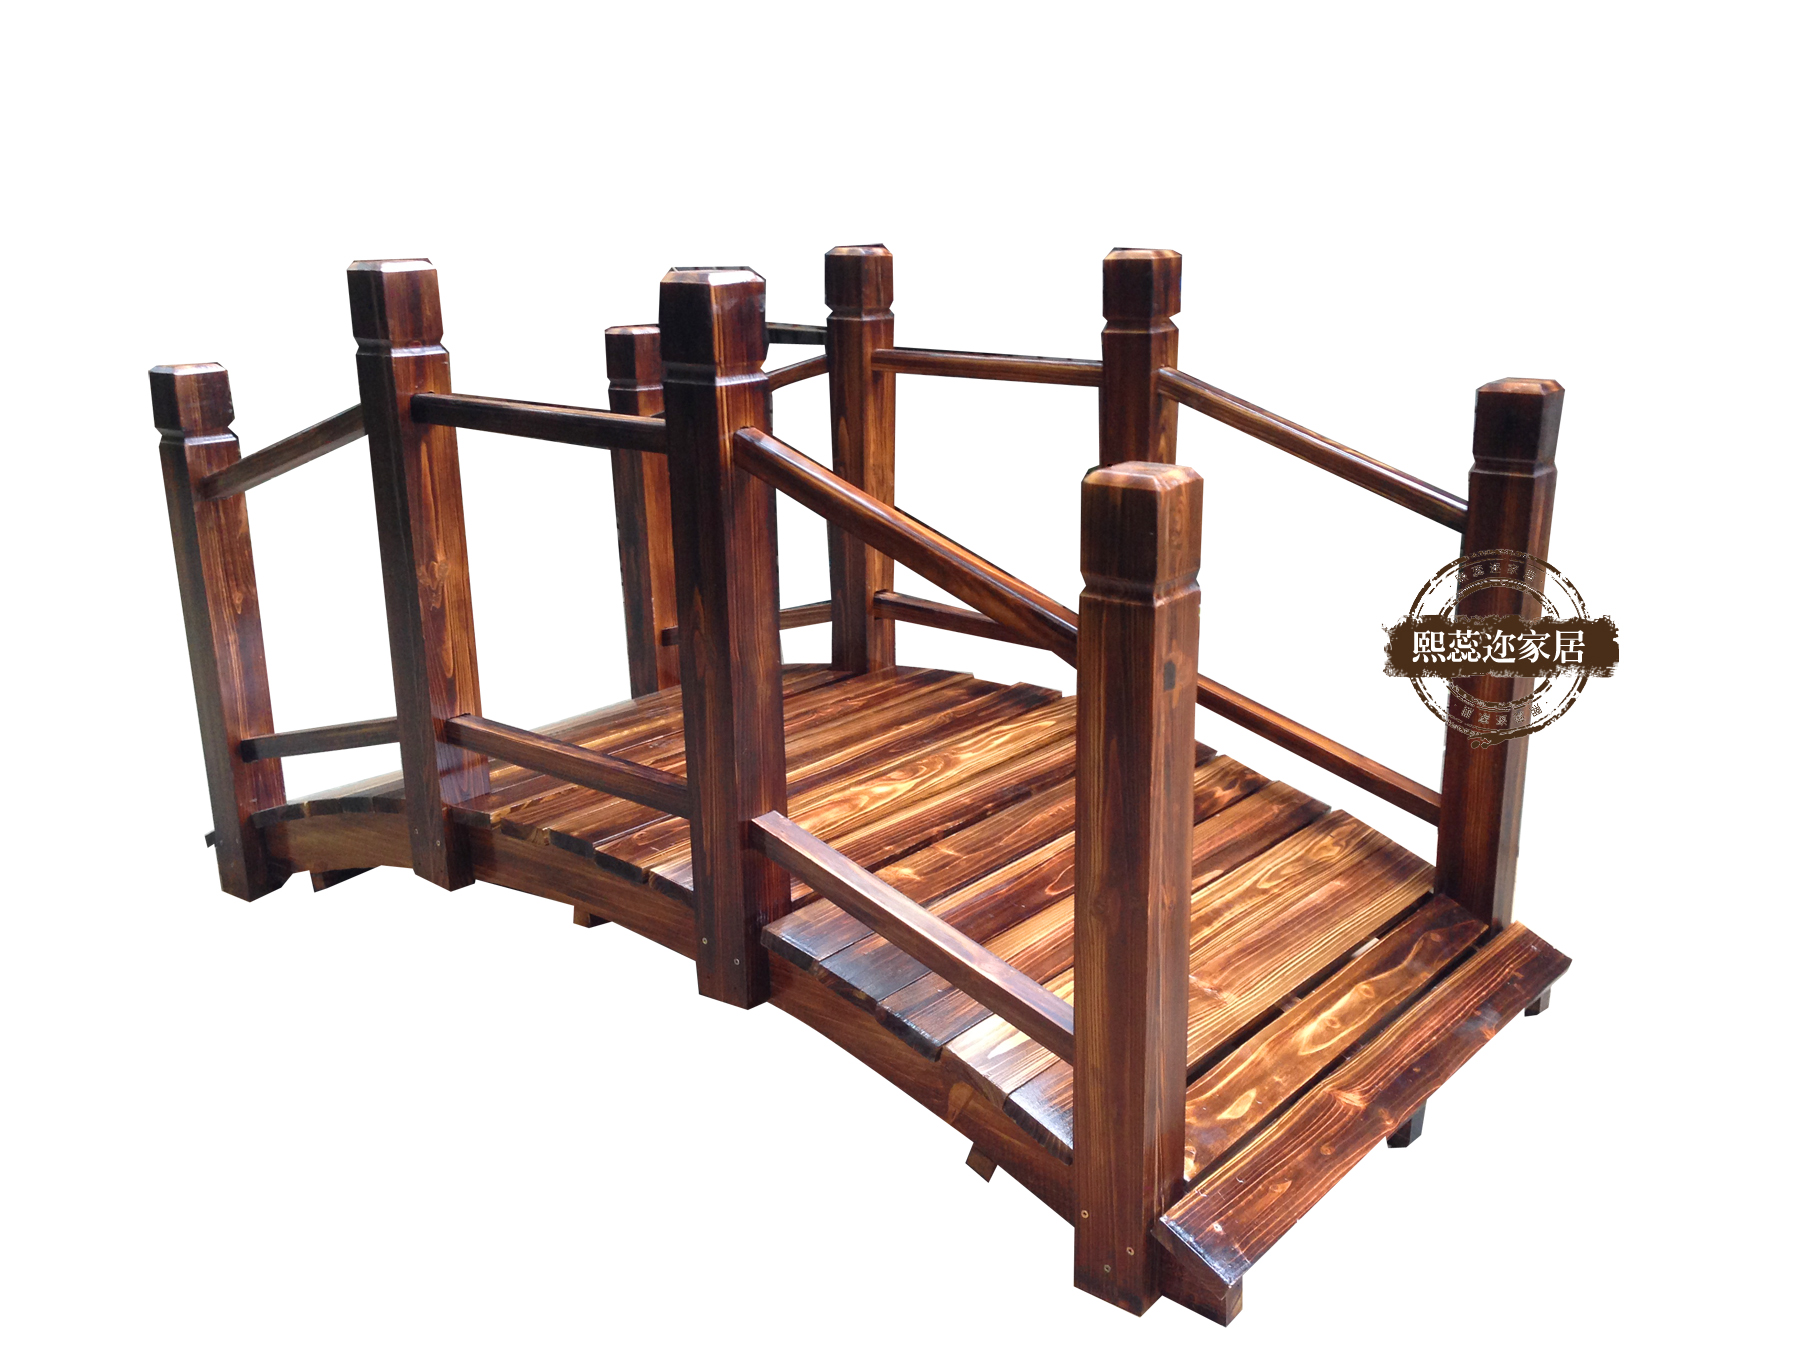 Rui xi er carbonized wood preservative antique wood gazebo bridges bridges the ride ting yuan garden outdoor furniture wood bridge